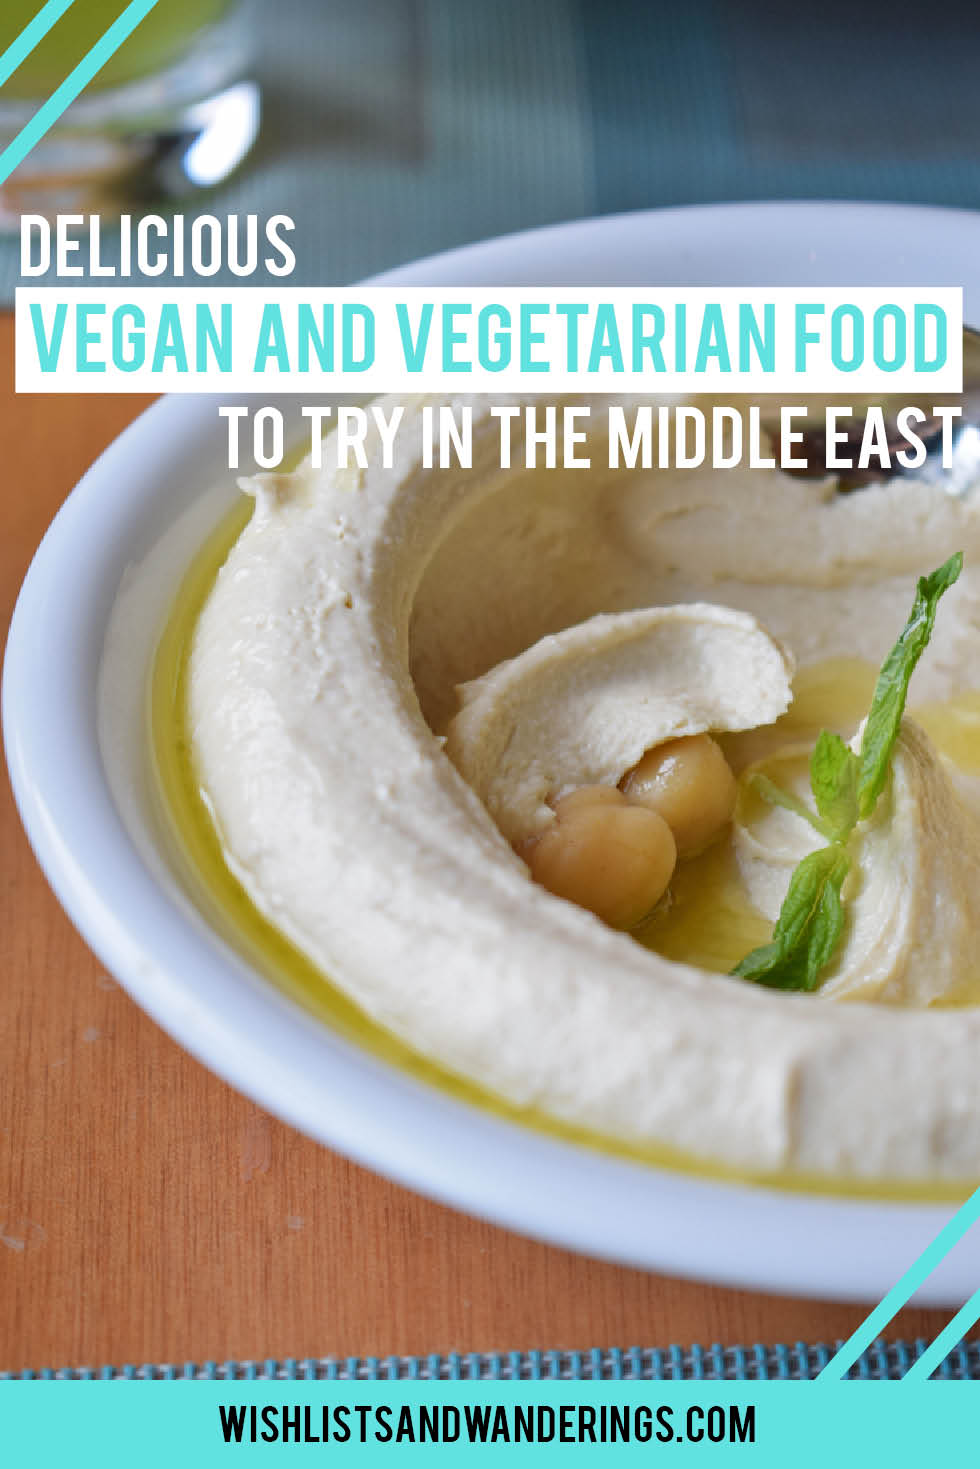 Falafel, hummus and beyond: There are so many delicious foods served in the Middle East and North Africa, and many of them are plant-based! Here are some common vegan and vegetarian friendly foods to try on your travels in the region.